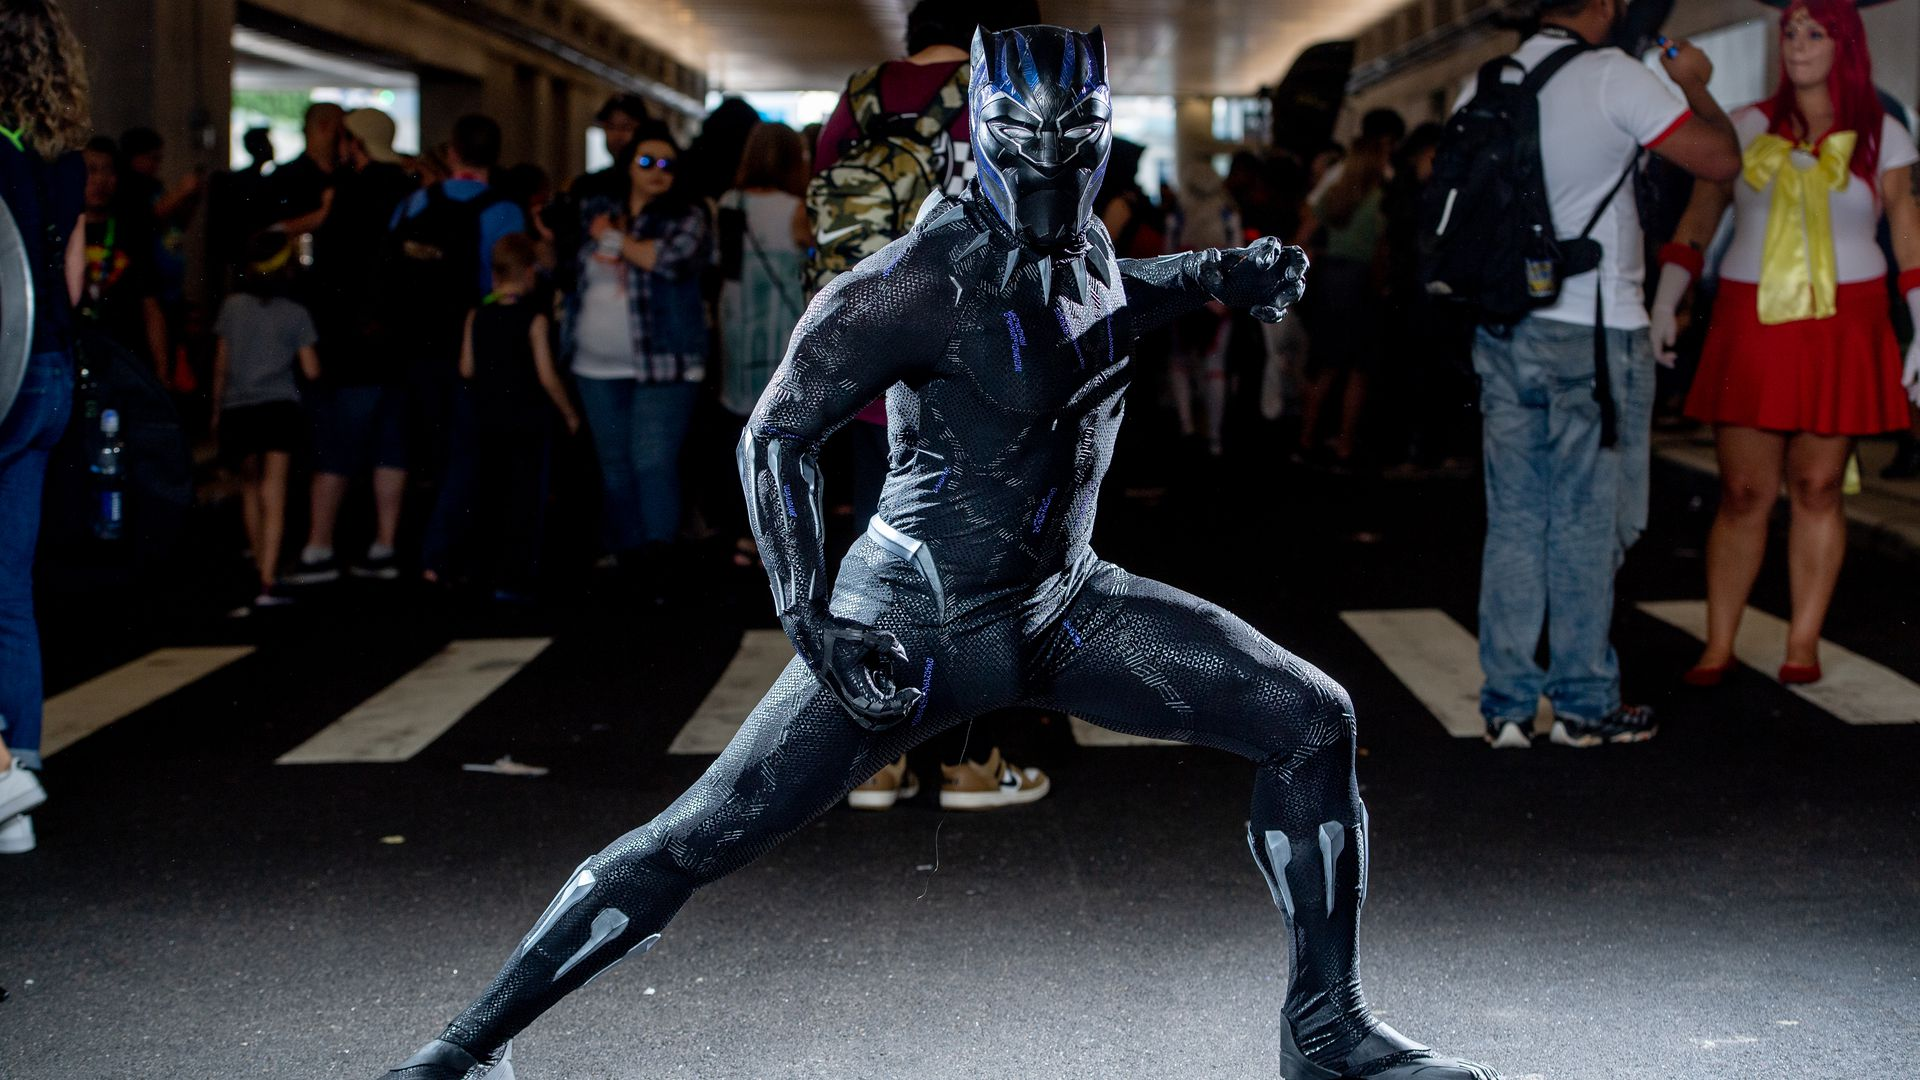 Someone dressed as Black Panther during Comic Con.